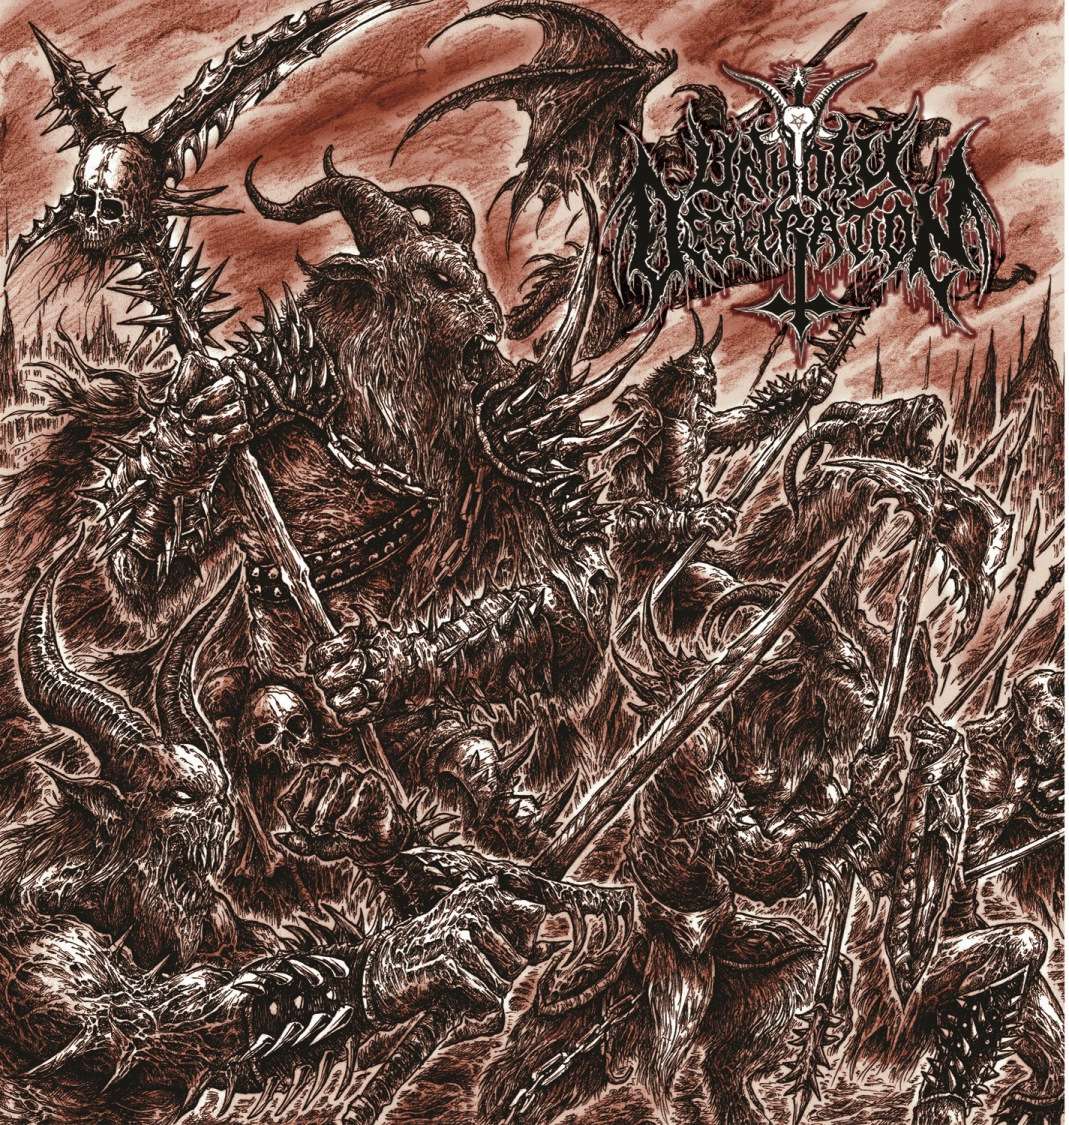 Unholy desceration1